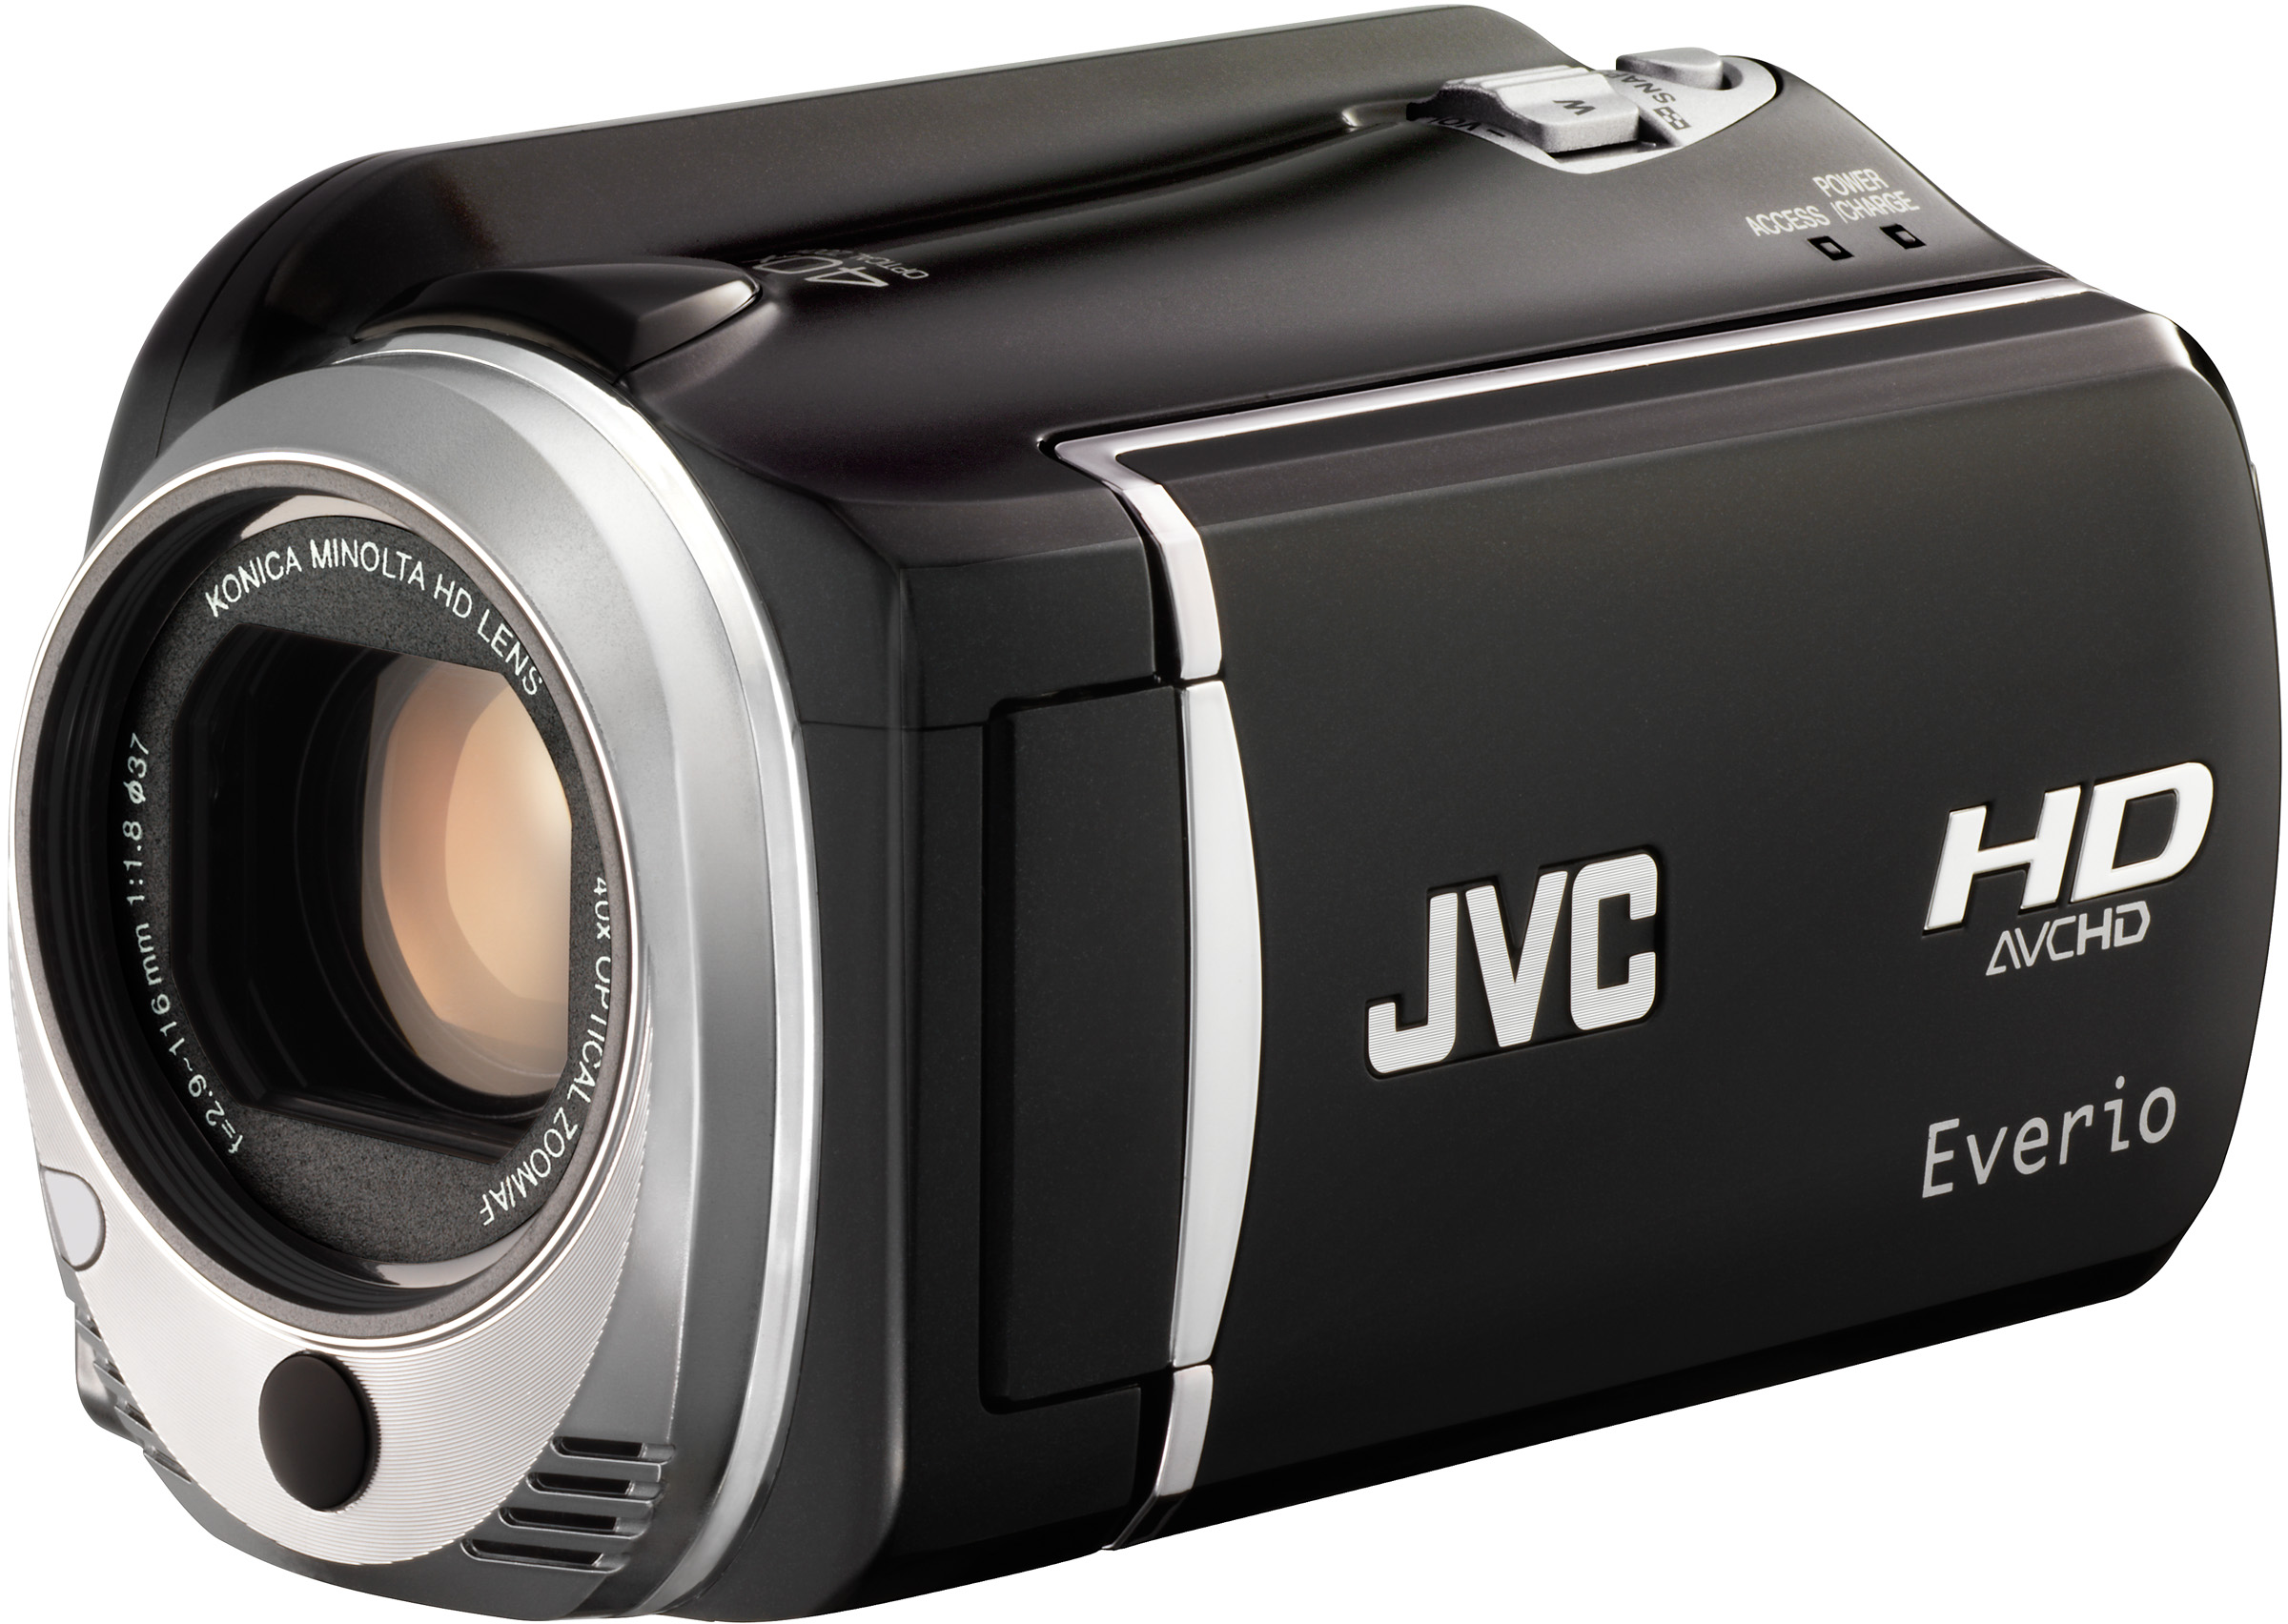 Jvc Gz Hd520b Battery And Charger Gzhd520b Camcorder And